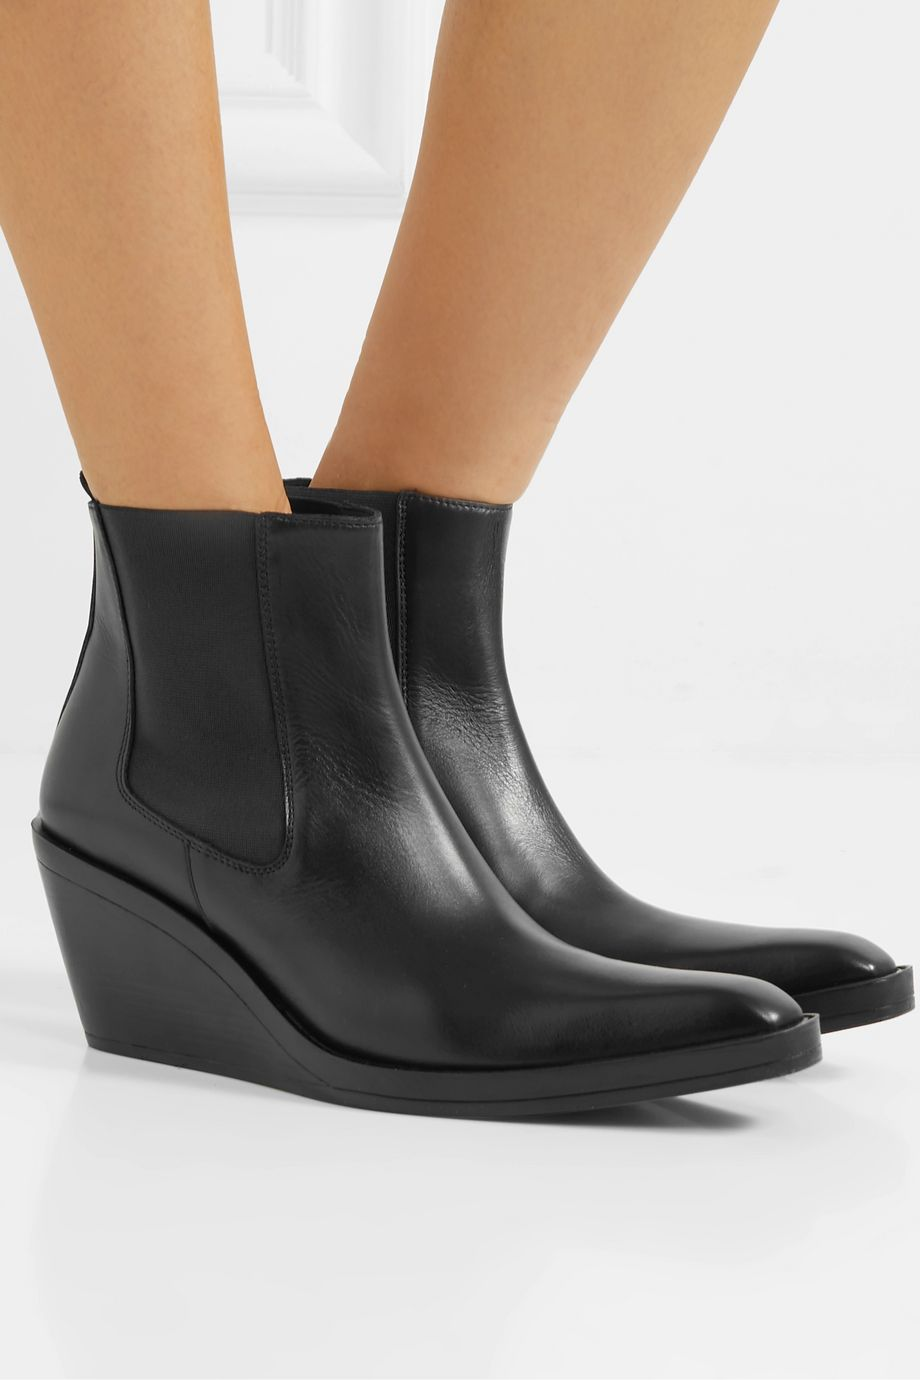 Acne Studios Leather wedge ankle boots